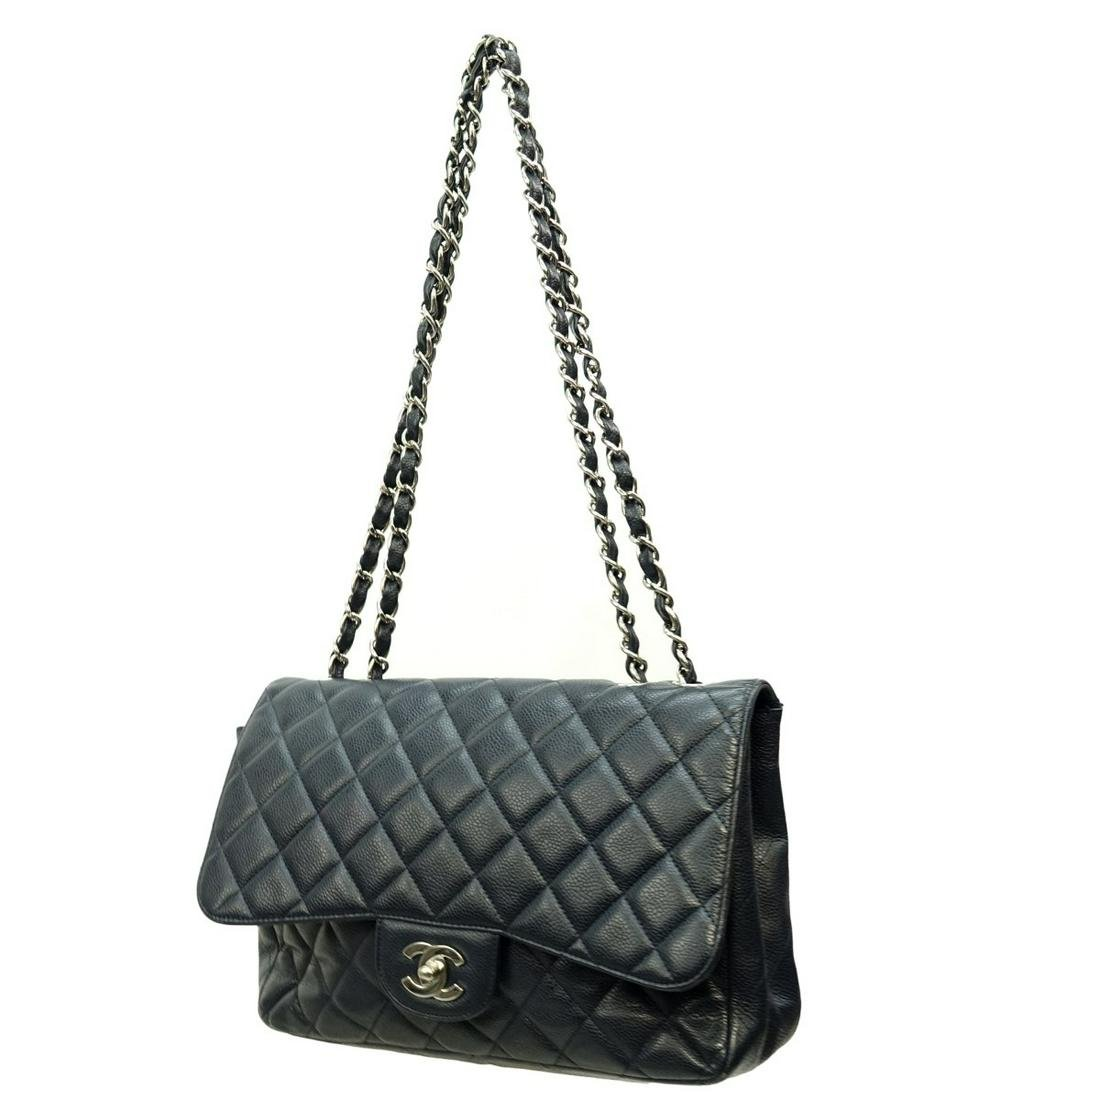 Chanel Jumbo Navy Blue Quilted Purse